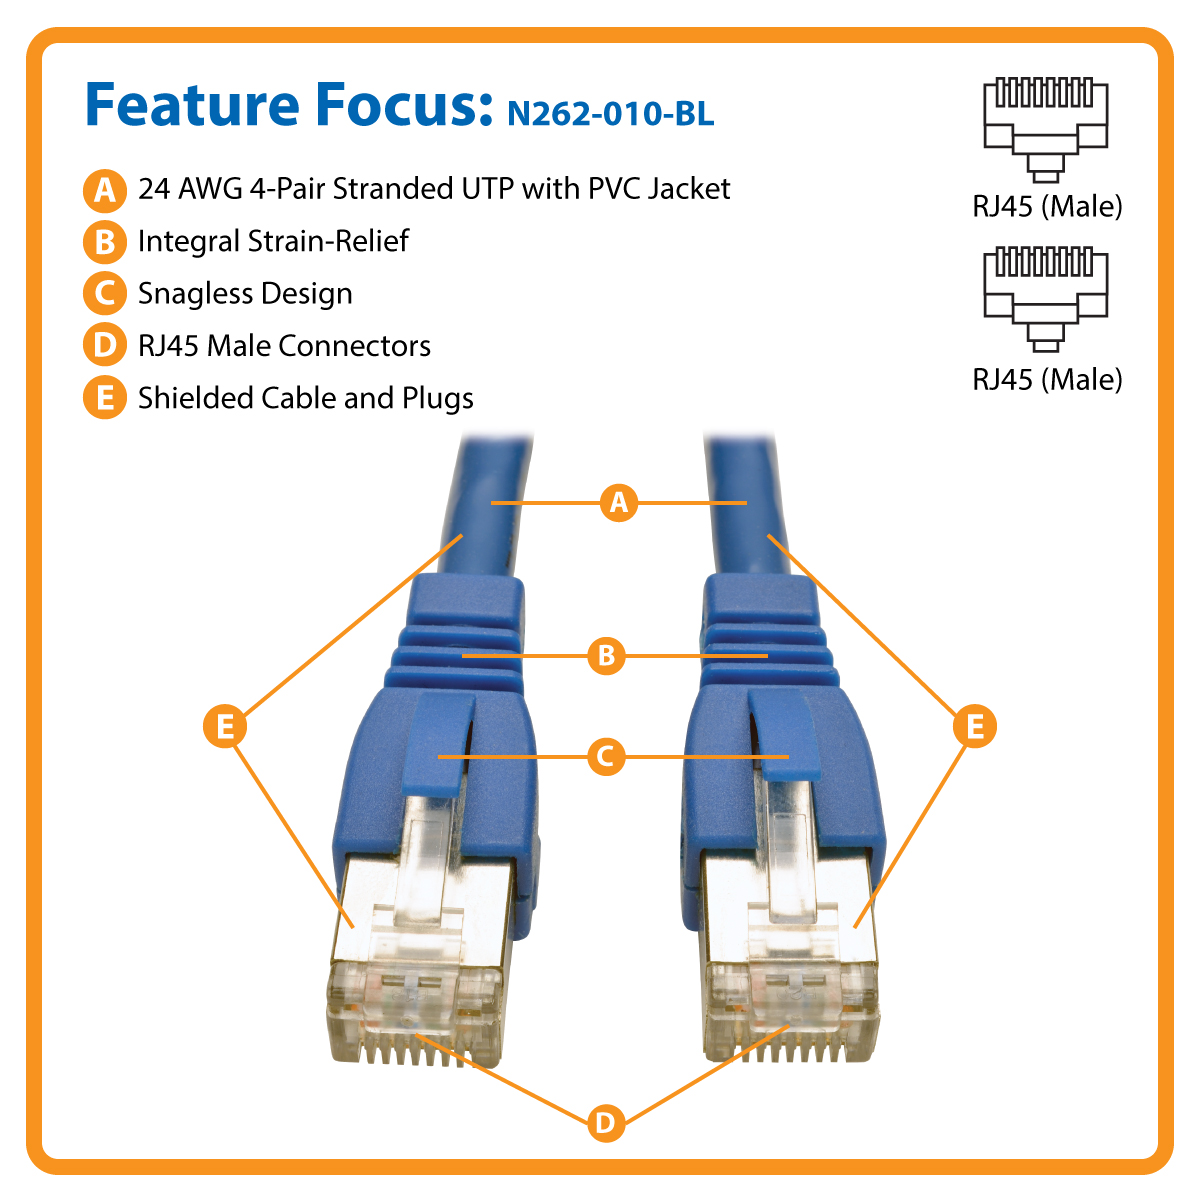 Tripp Lite Patch Cable Cat6a Stp Snagless 3m Blue N262 Cat5e Rj45 Ethernet Shielded 26 Awg Pvc Jacket Gray 150 Ft Augmented Cat6 Twisted Pair 10g Certified